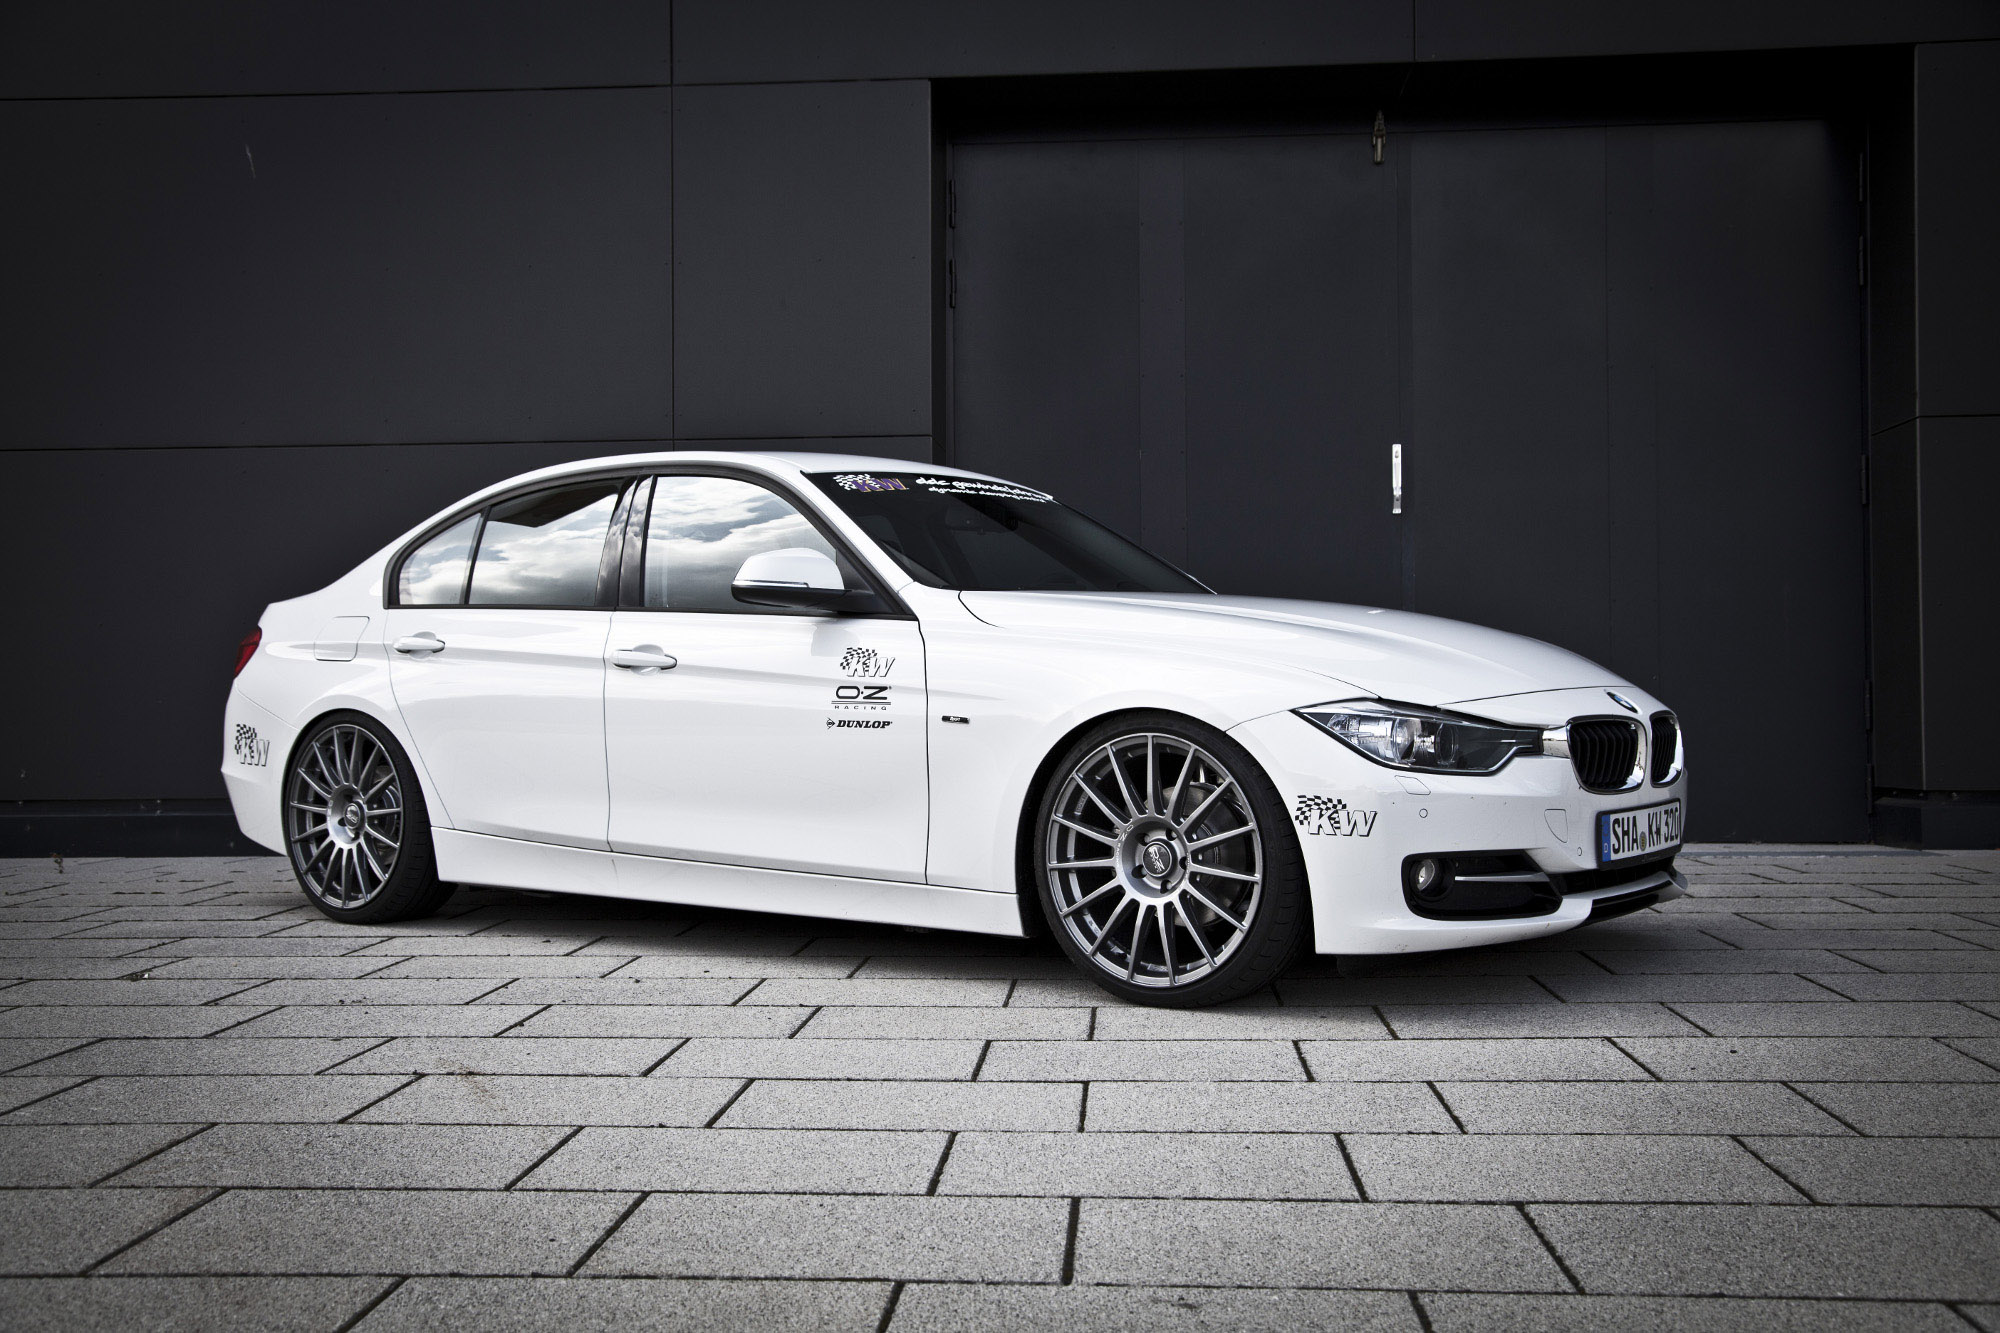 kw 2012 bmw 3 series f30 tuning wallpaper 2000x1333 82983 wallpaperup. Black Bedroom Furniture Sets. Home Design Ideas